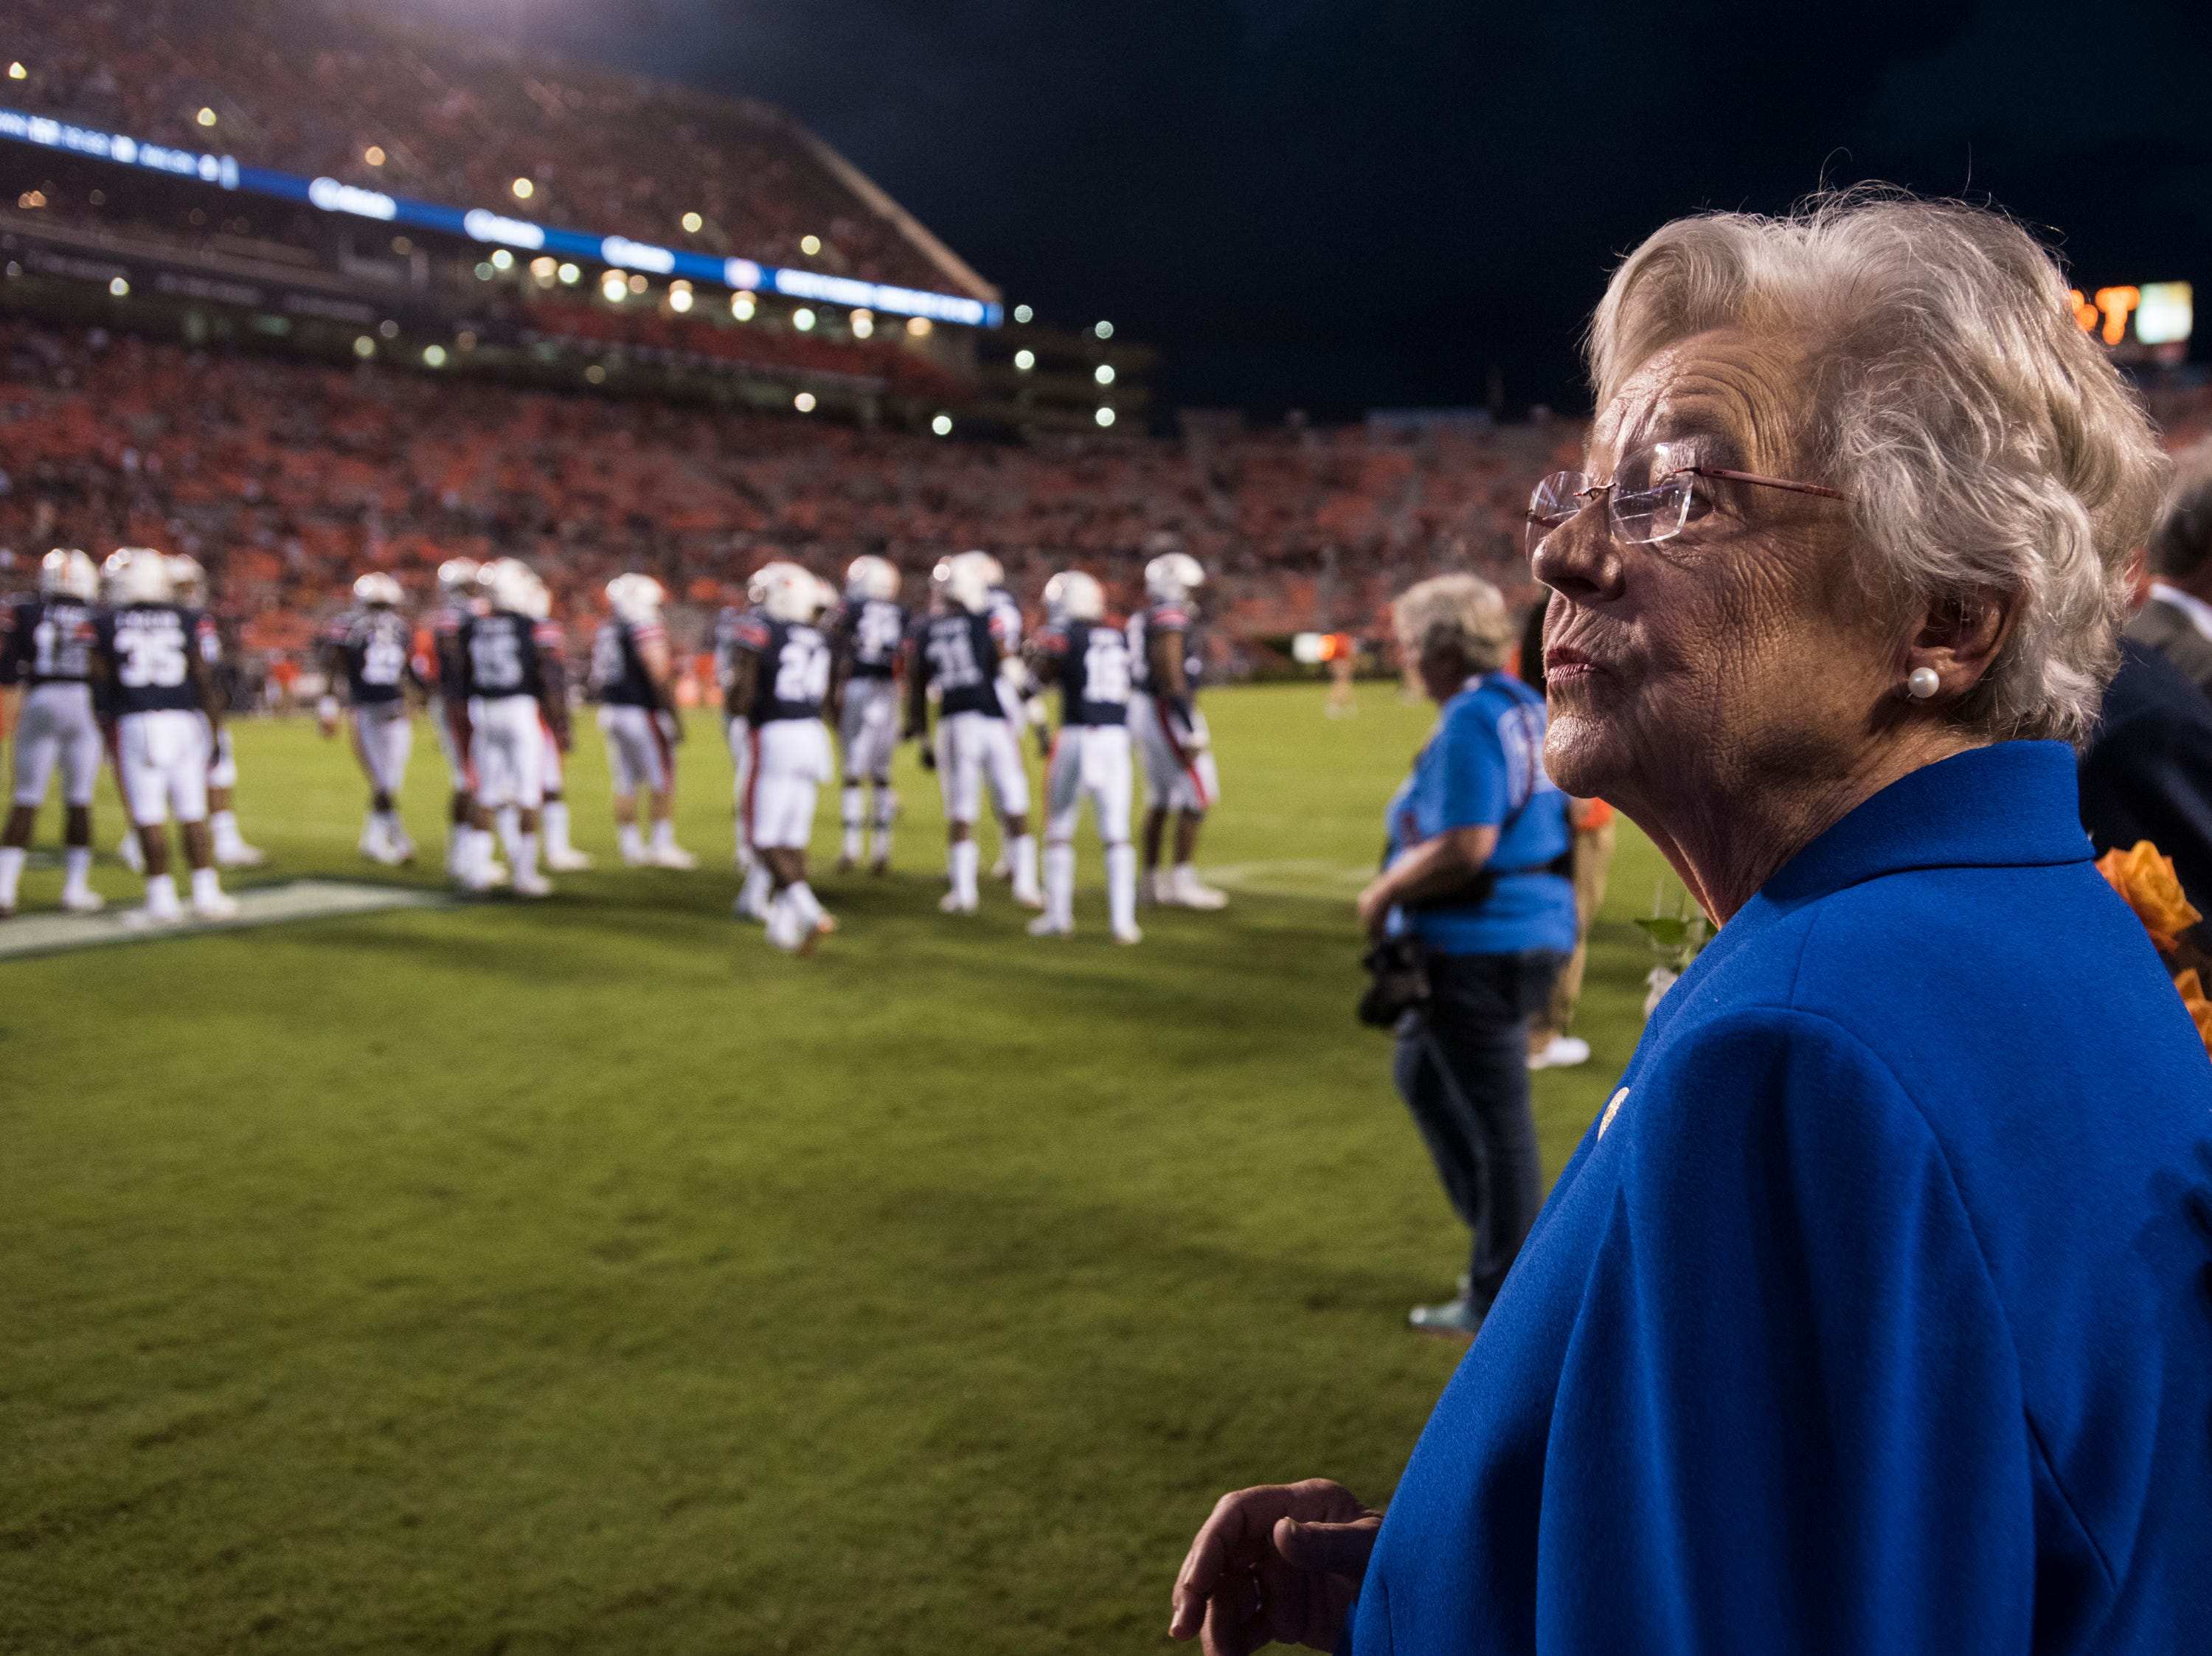 Alabama Gov. Kay Ivey watches as the Auburn players take the field following the weather delay at Jordan-Hare Stadium in Auburn, Ala., on Saturday, Sept. 29, 2018. Auburn defeated  Southern Miss 24-13.